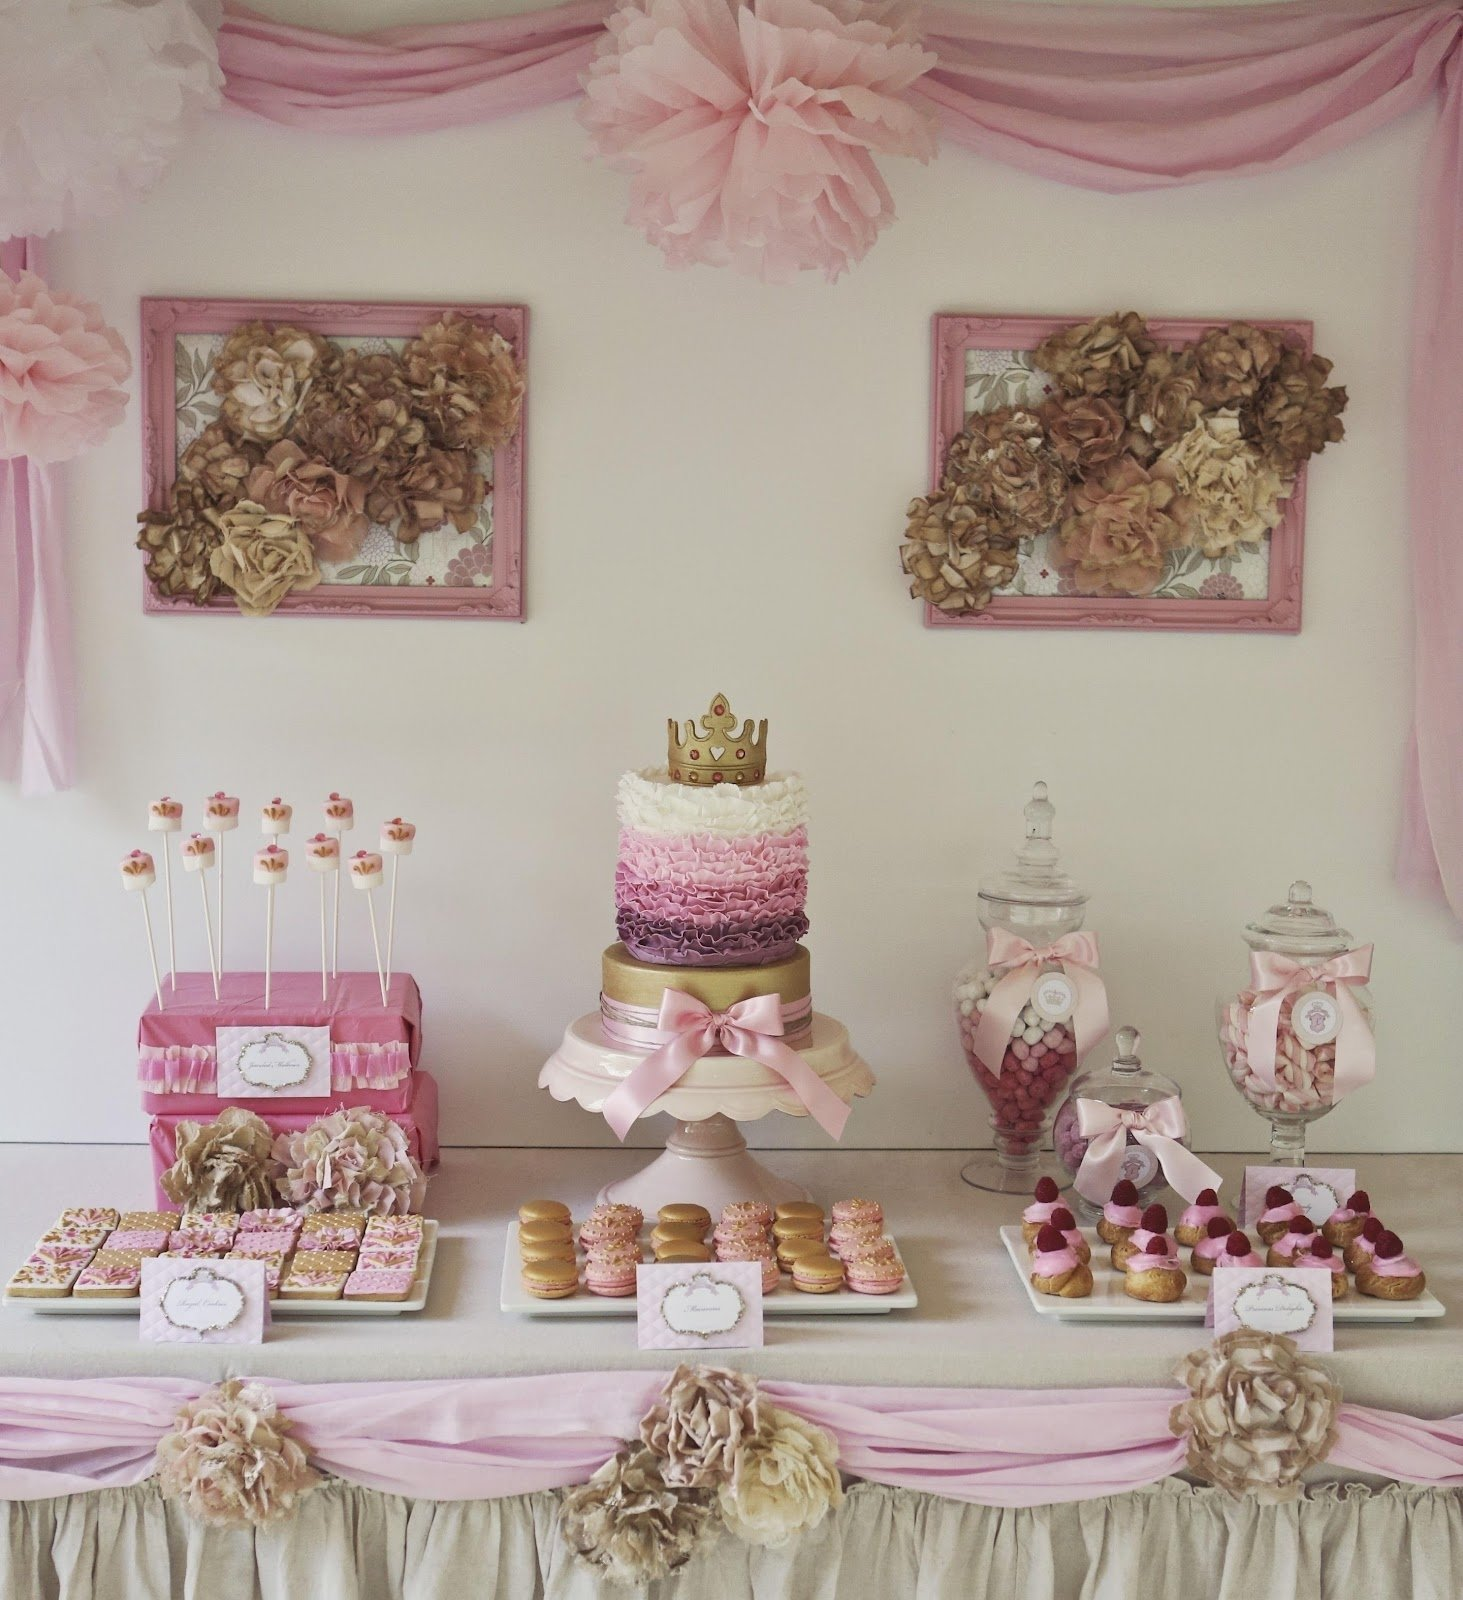 10 Spectacular 5 Year Old Girl Birthday Ideas 5 year old birthday girl party ideas chic princess 8th 5 2020